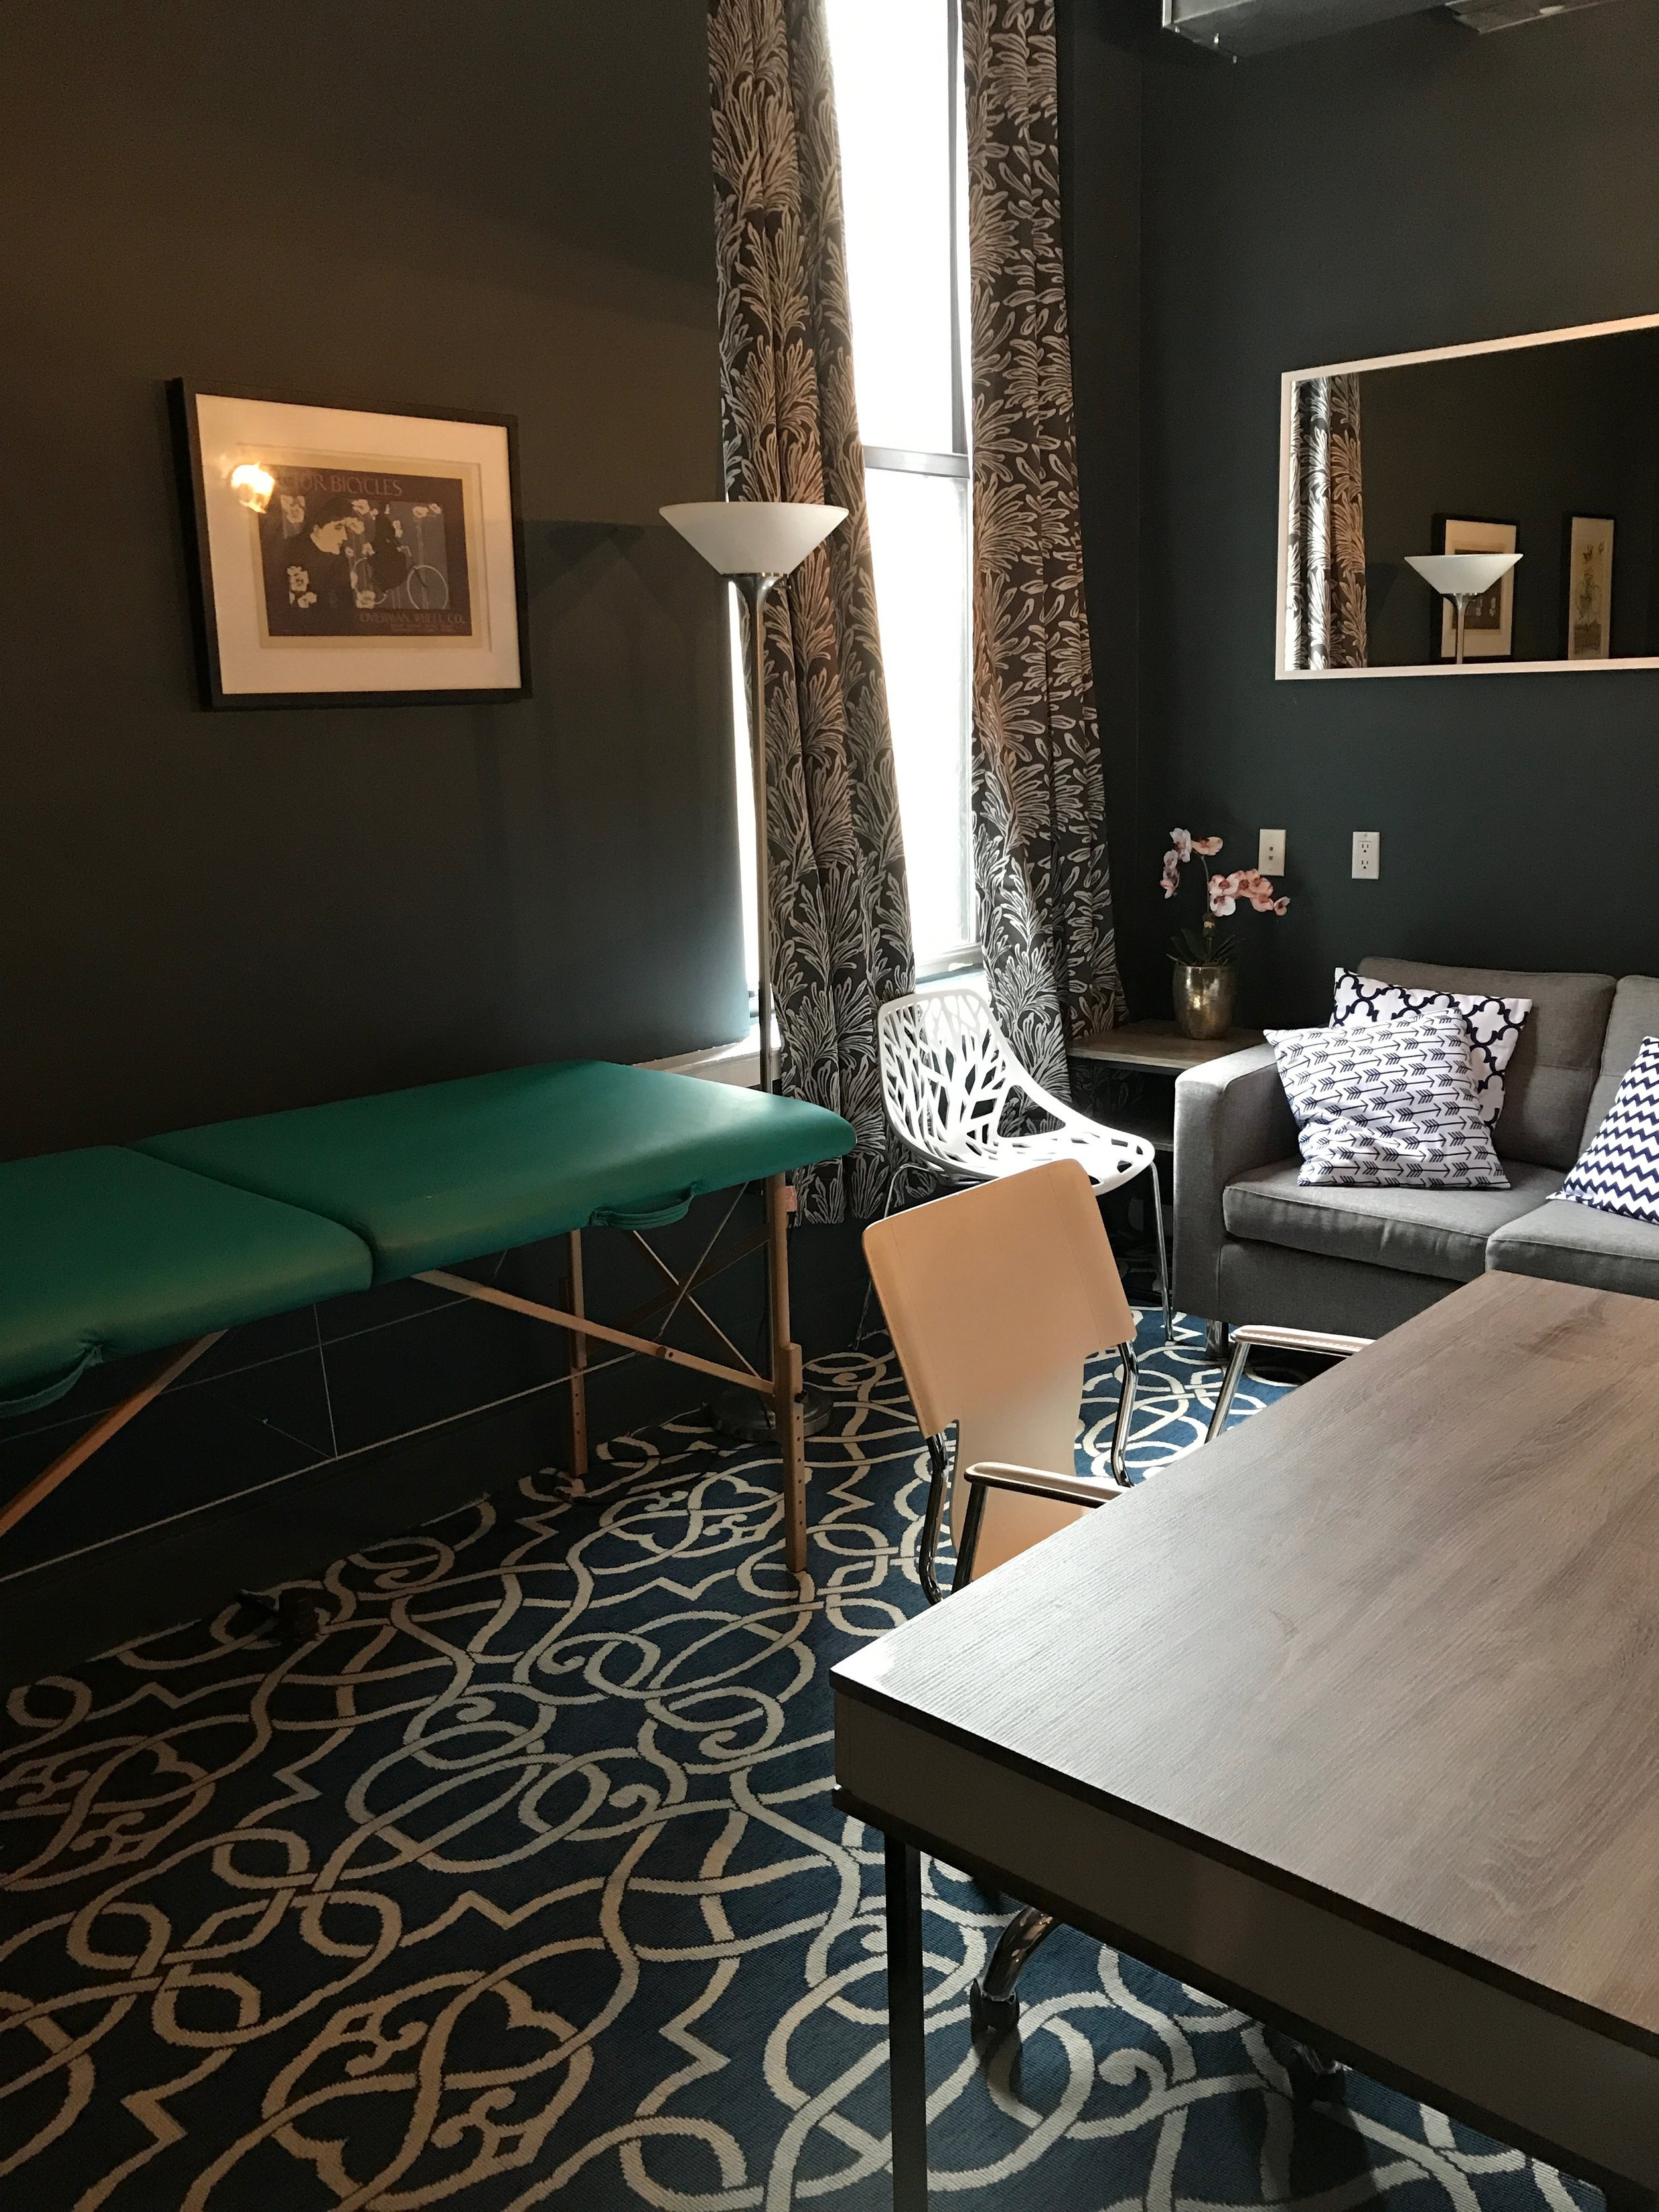 Room 7 - Available Saturday & SundayMassage table can be removed. approximate dimensions are 8' x 14' with window. Ideal for therapist, hypnosis, energy work, PT, chiropractor.